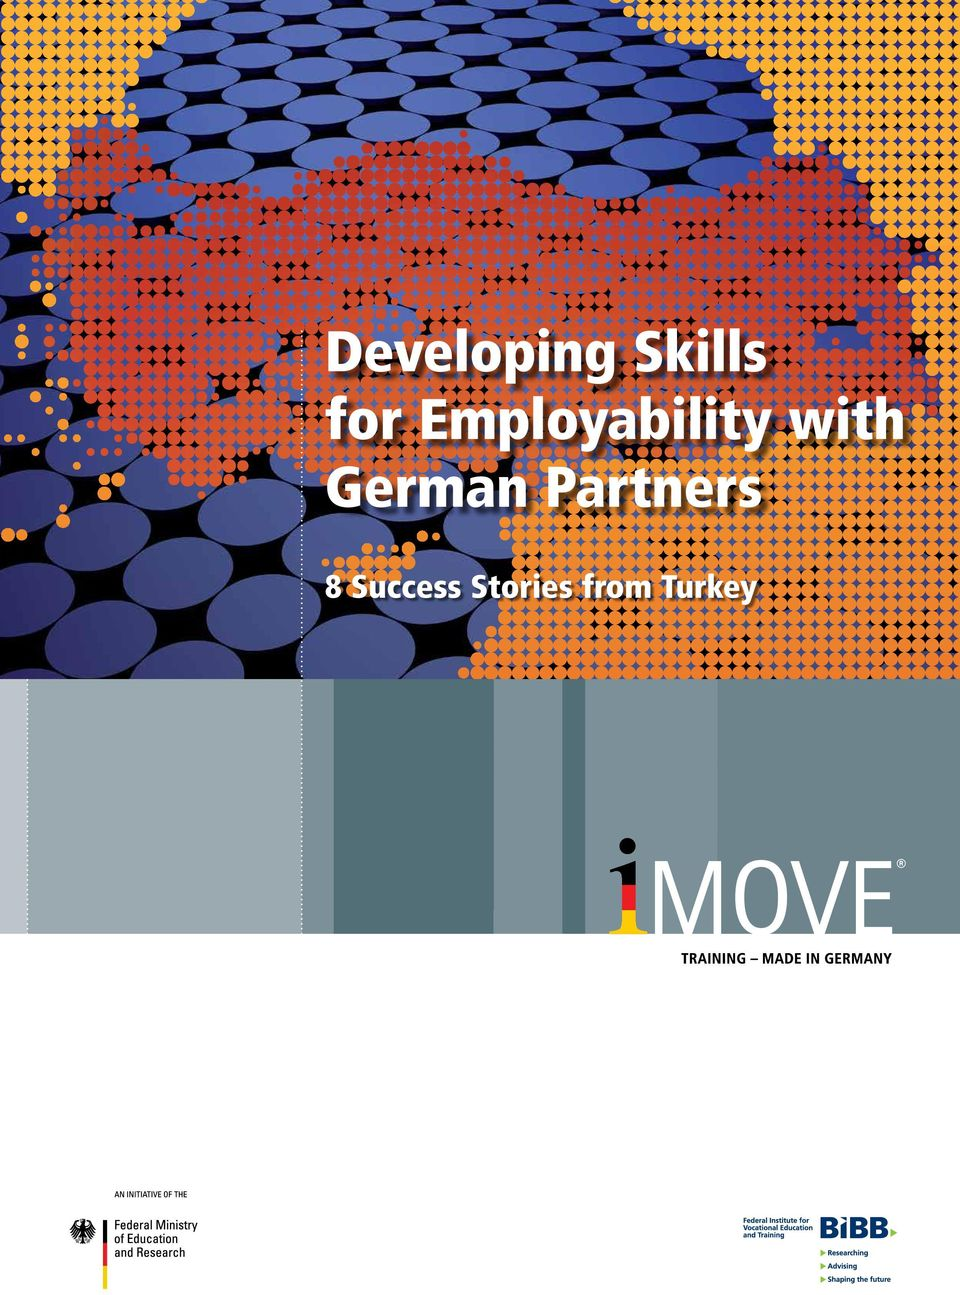 German Partners 8